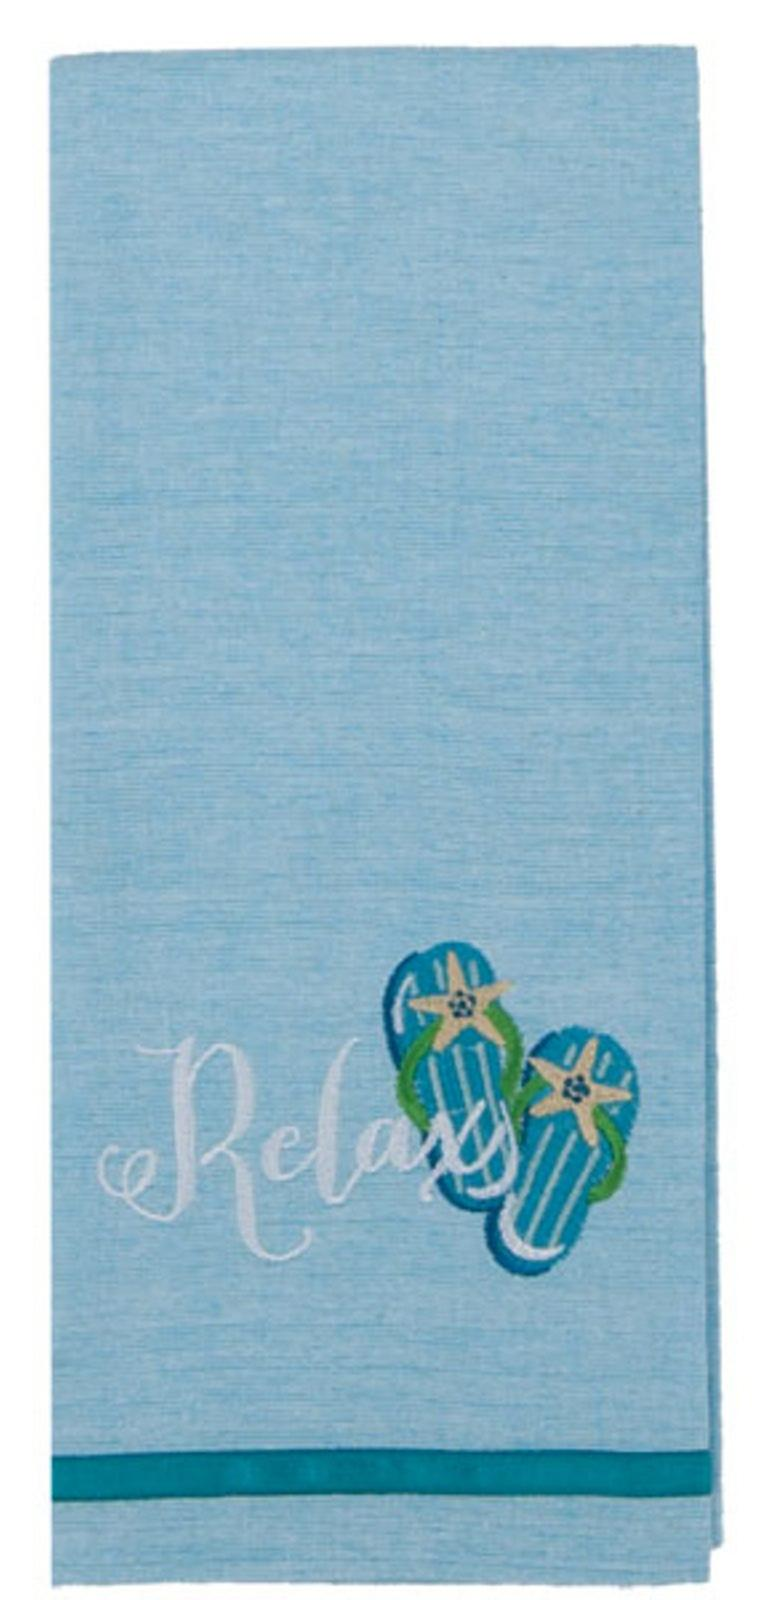 Relax Flip Flops Coastal 28 Inch Embroidered Kitchen Tea Towel Cotton Kay Dee